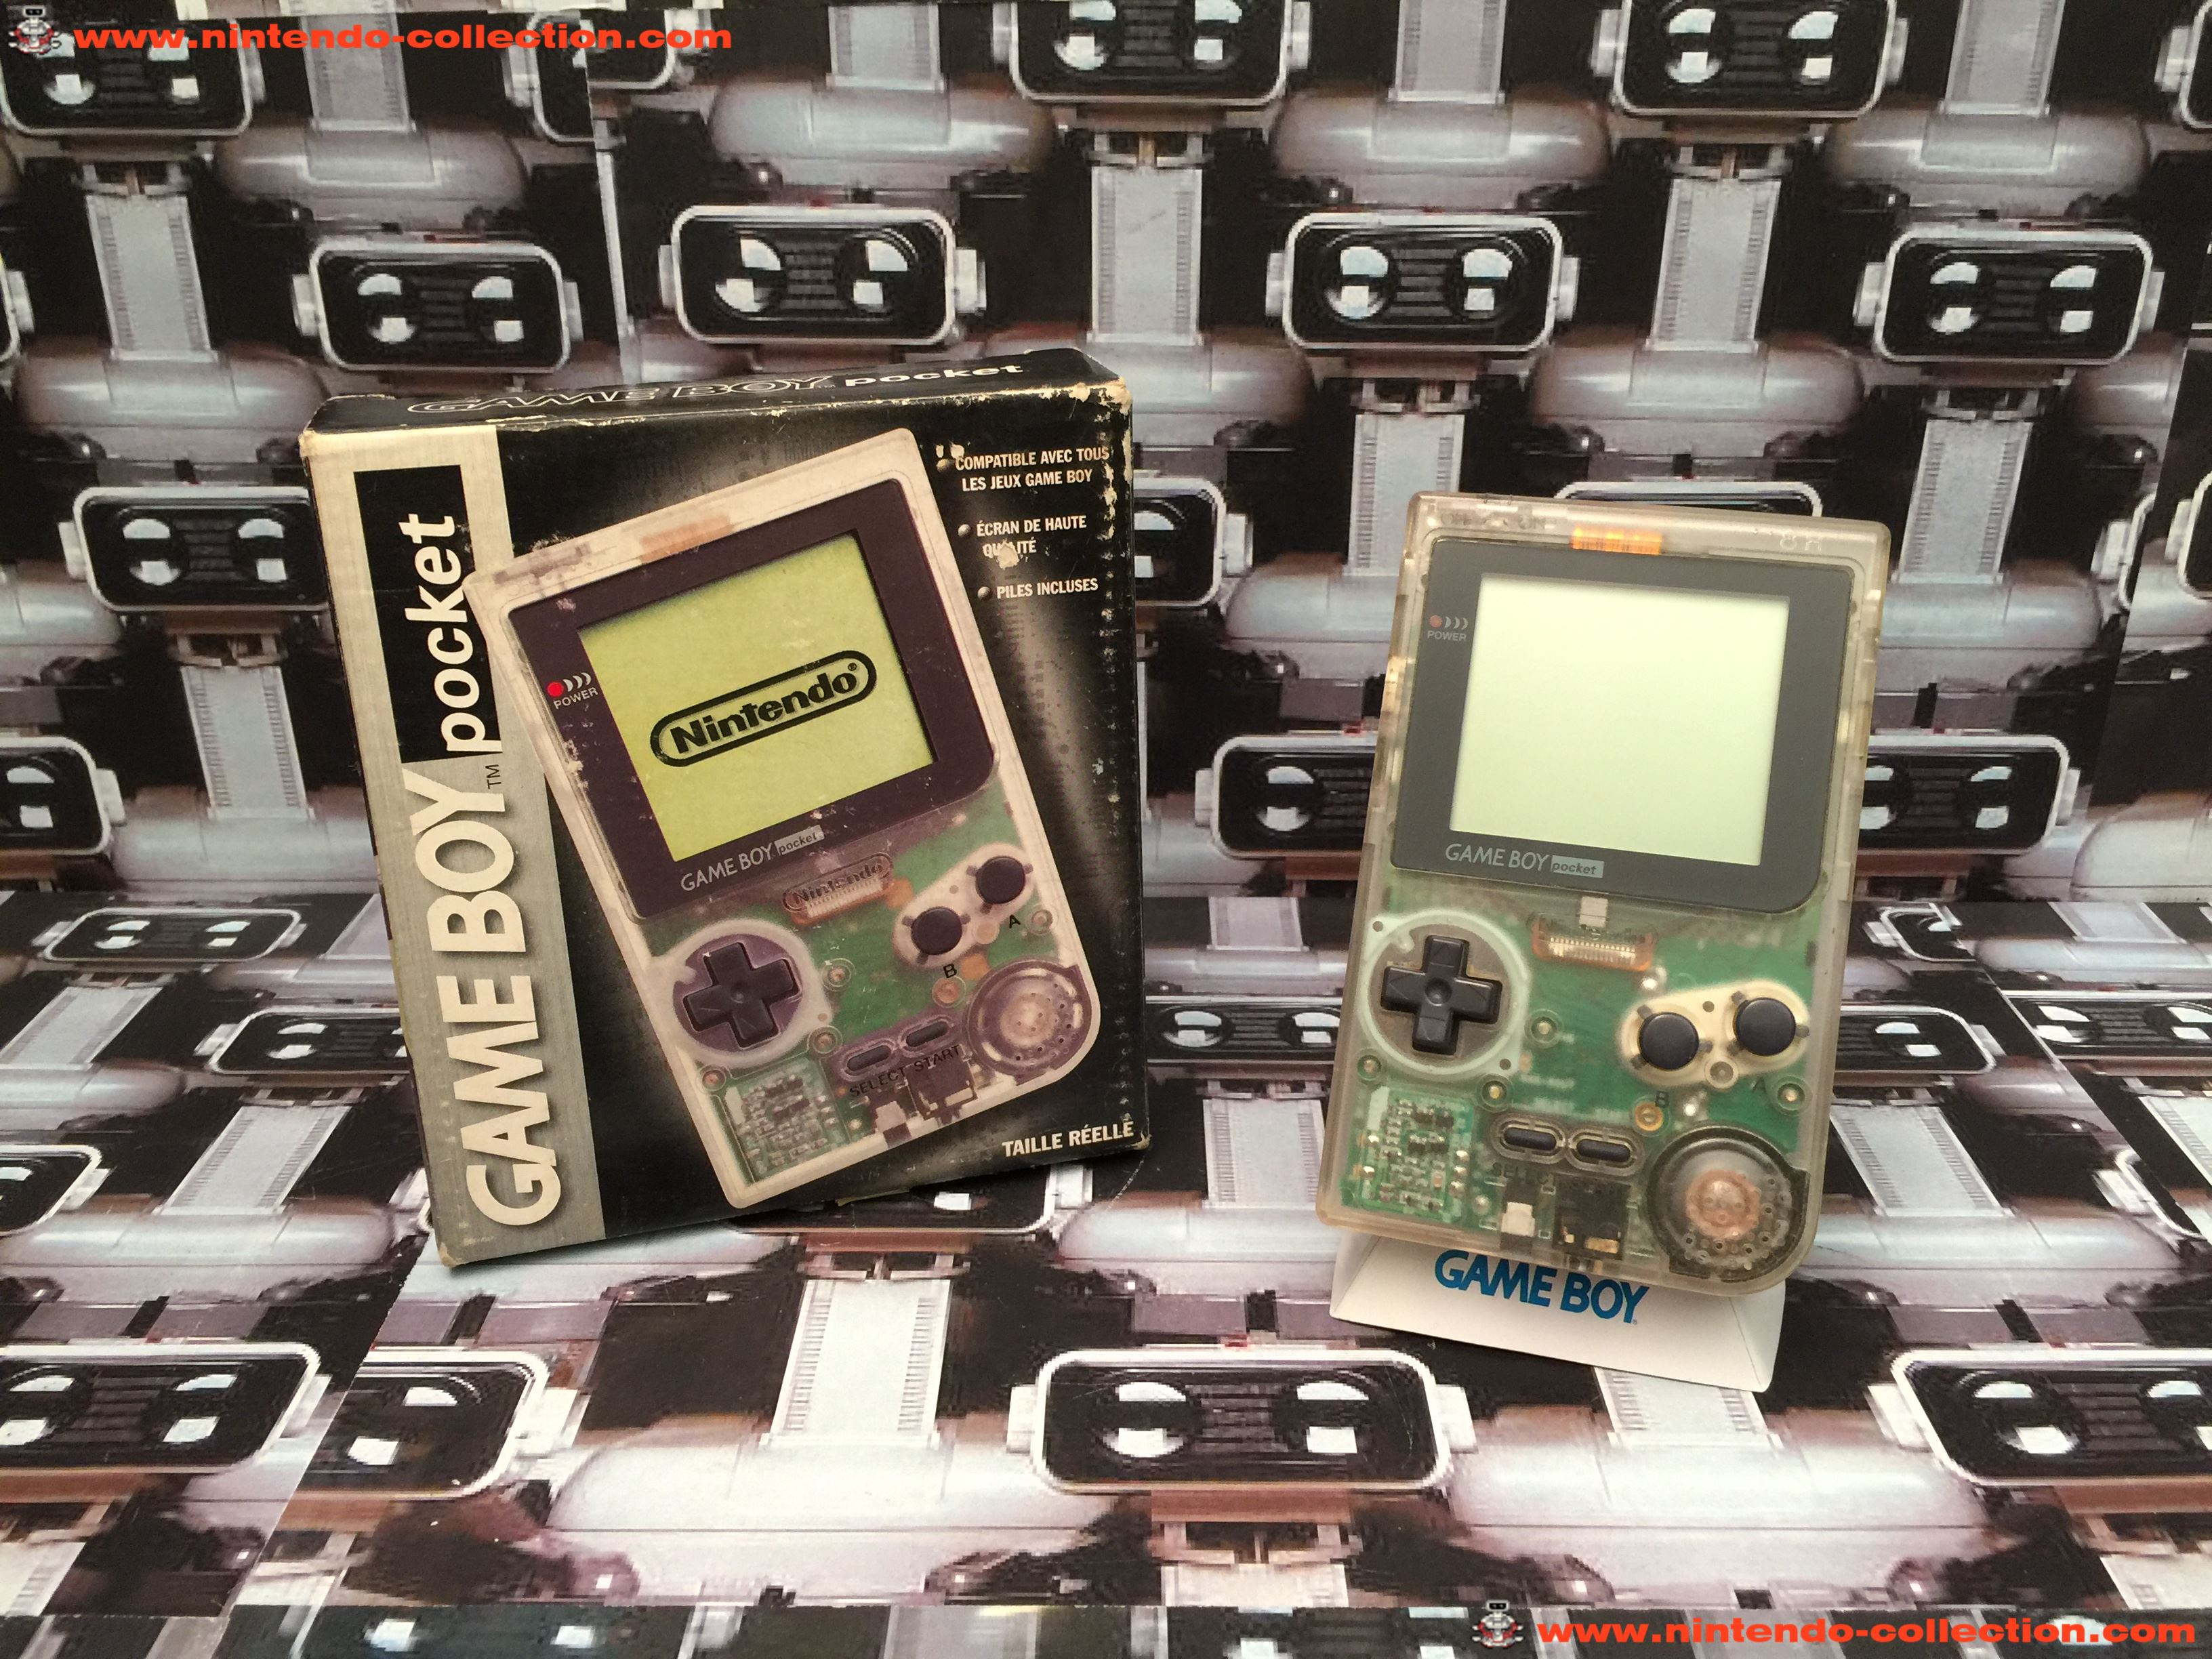 www.nintendo-collection.com - Gameboy GB Pocket Clear Transparente en boite in box European Europe